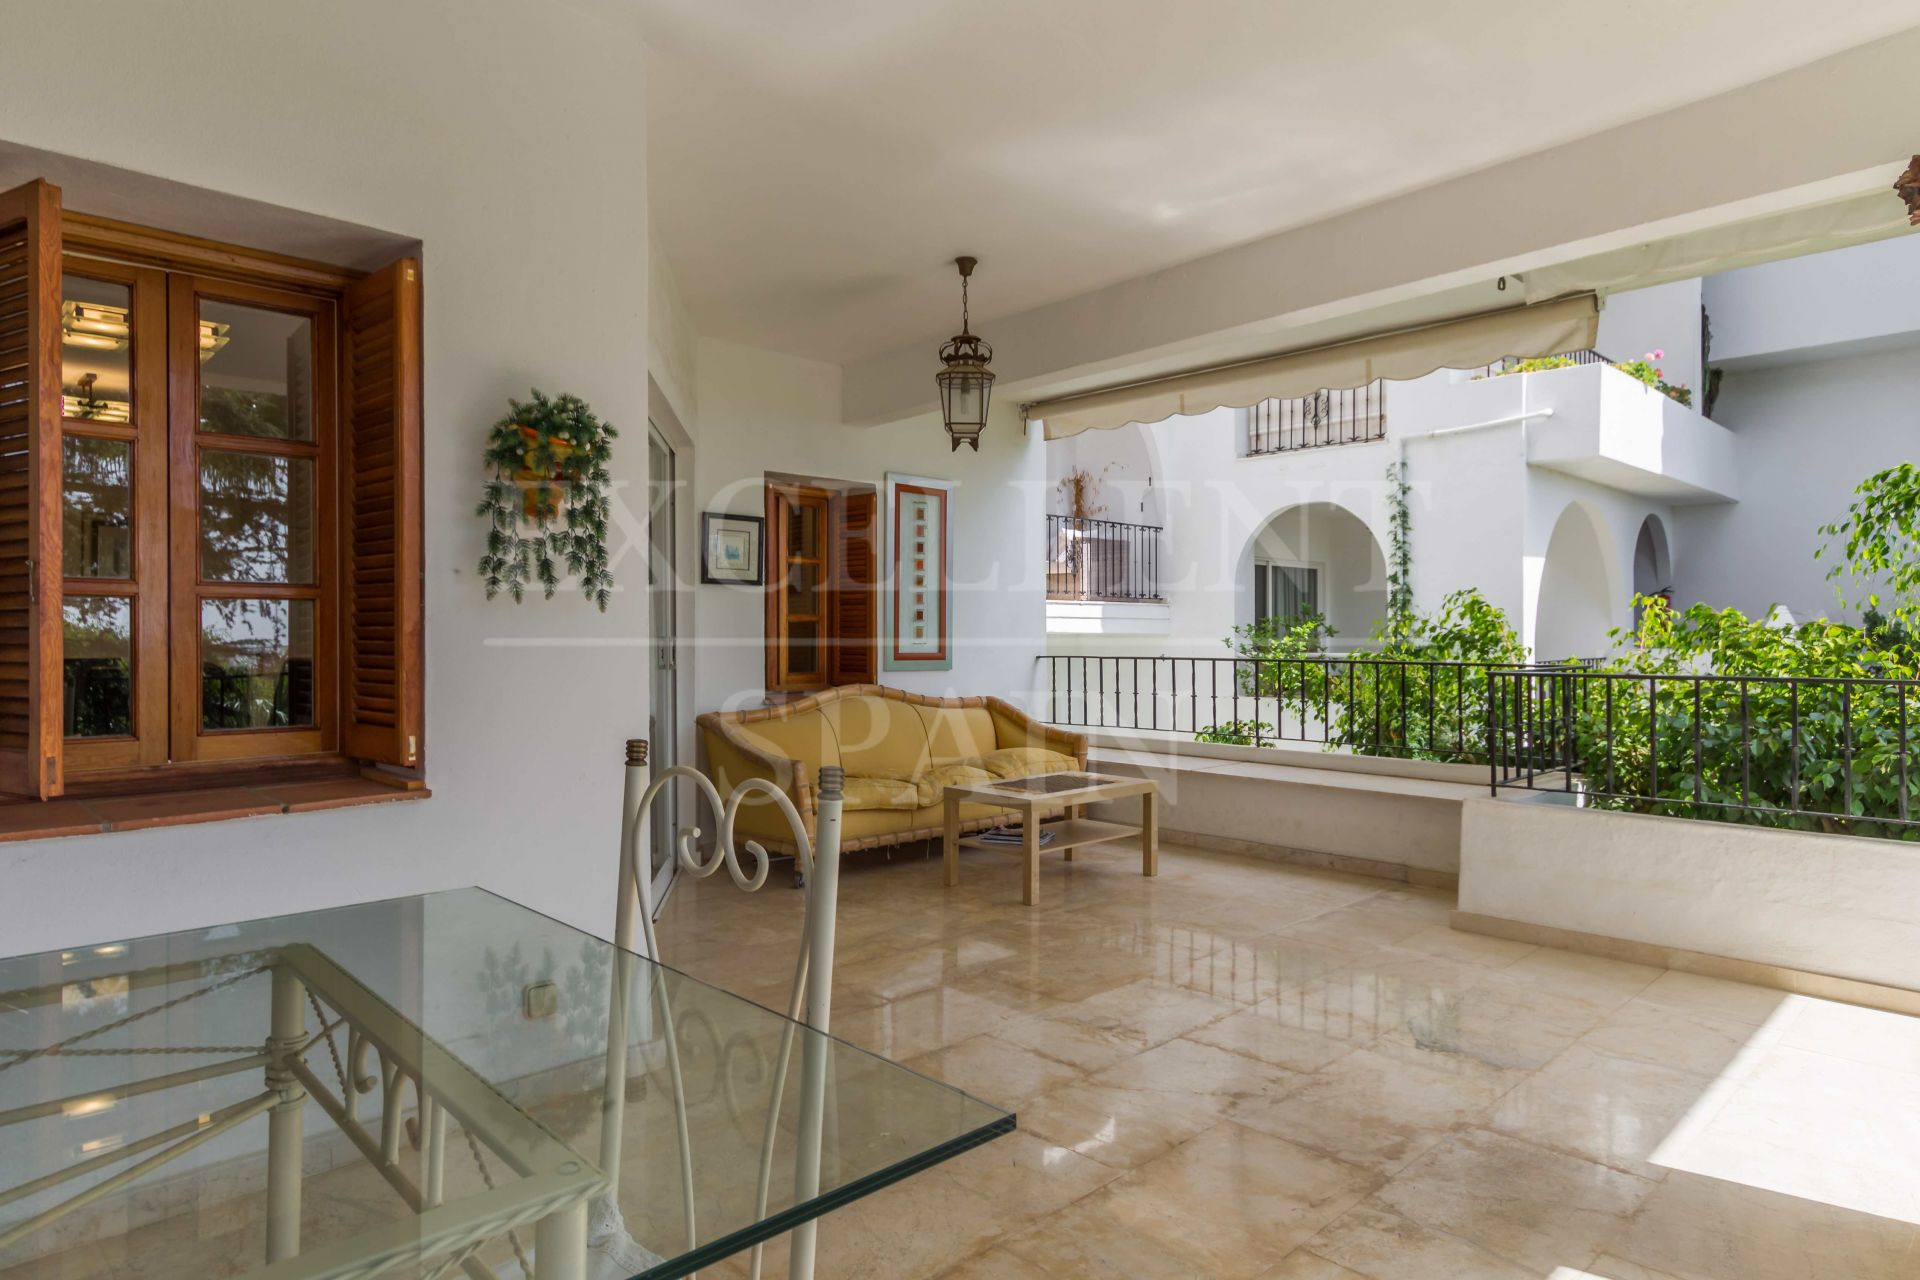 Appartement in Señorio de Marbella, Marbella Golden Mile